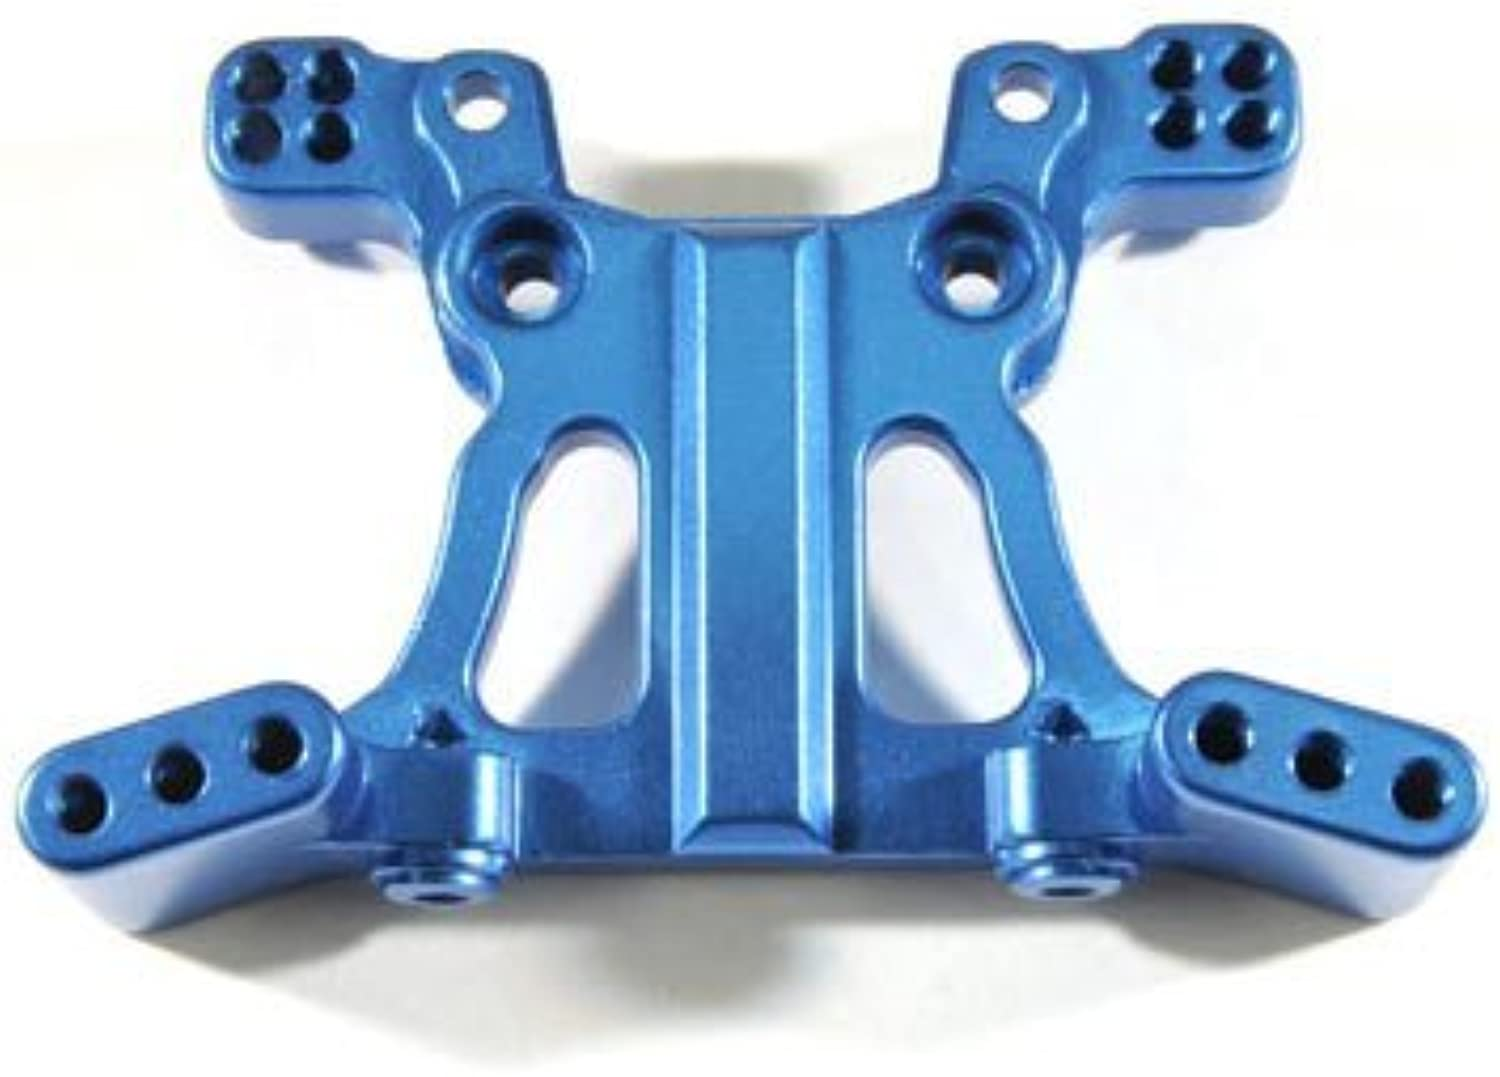 Front Shock Tower, bluee  Slash 4x4,Rally,Stamp 4x4 by golden Horizon